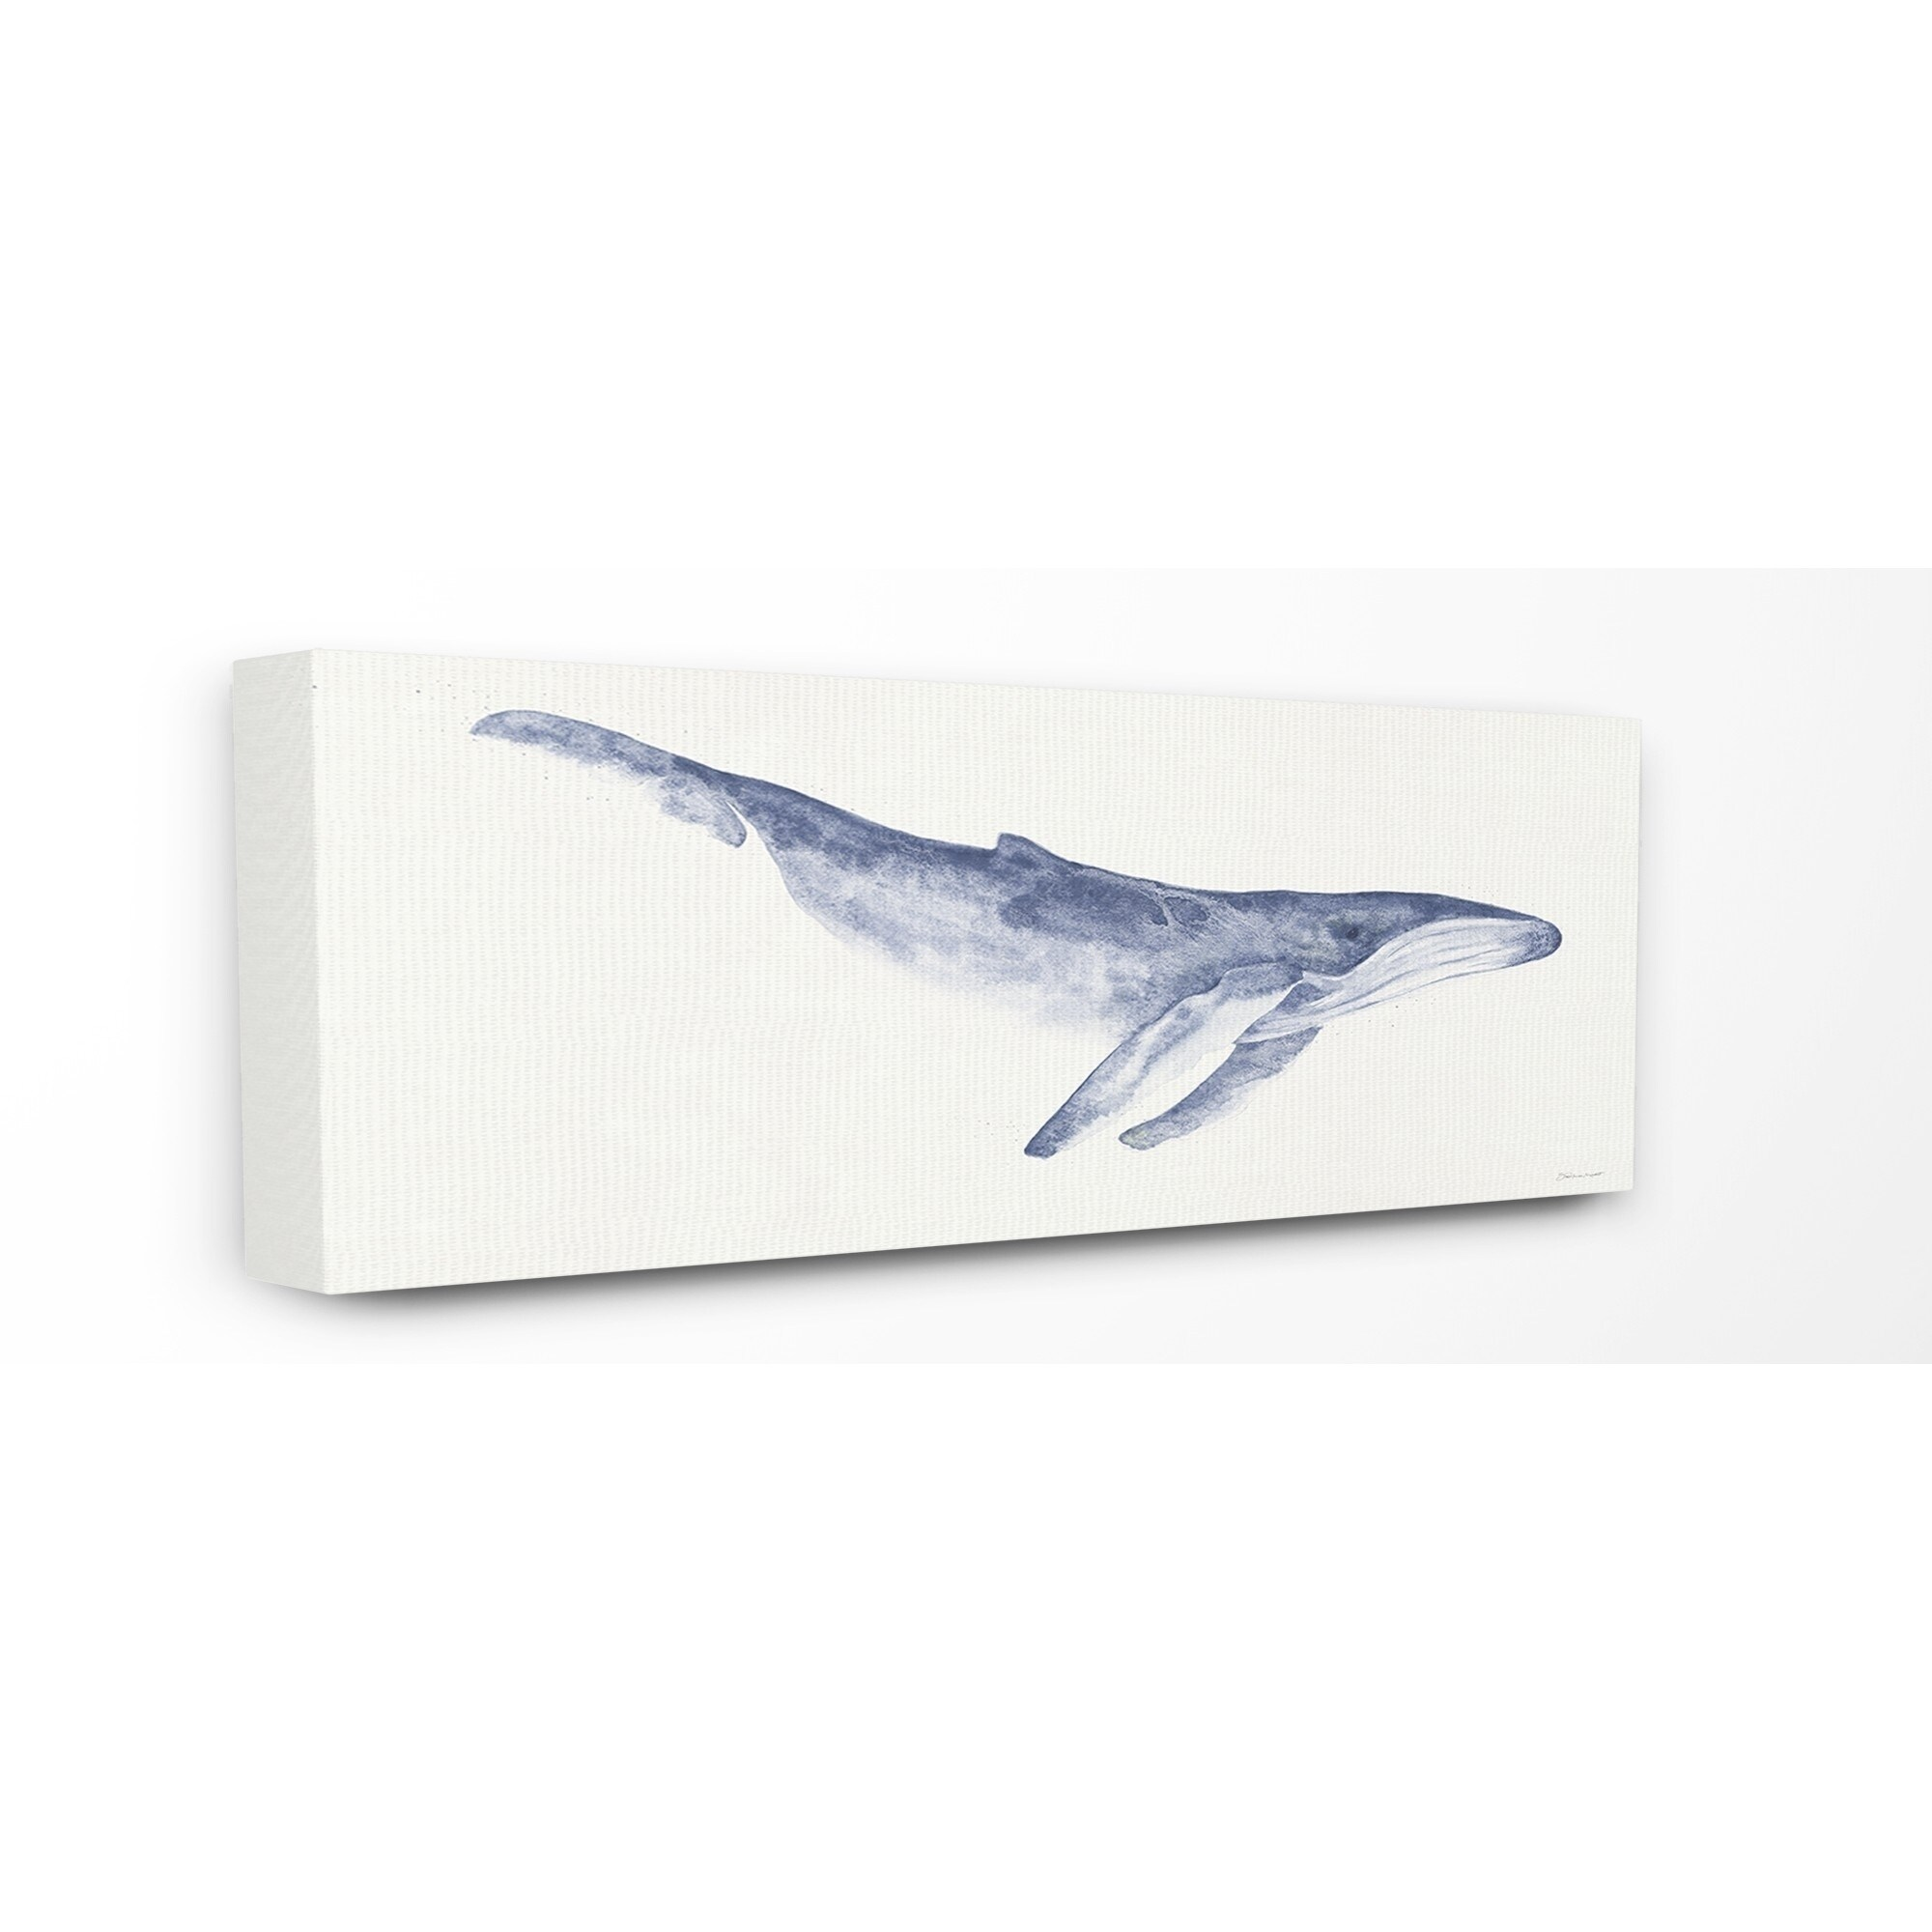 The Stupell Home Decor Collection Blue Whale Watercolor Ilration Canvas 10 X 1 5 24 Made In Usa Multi Color